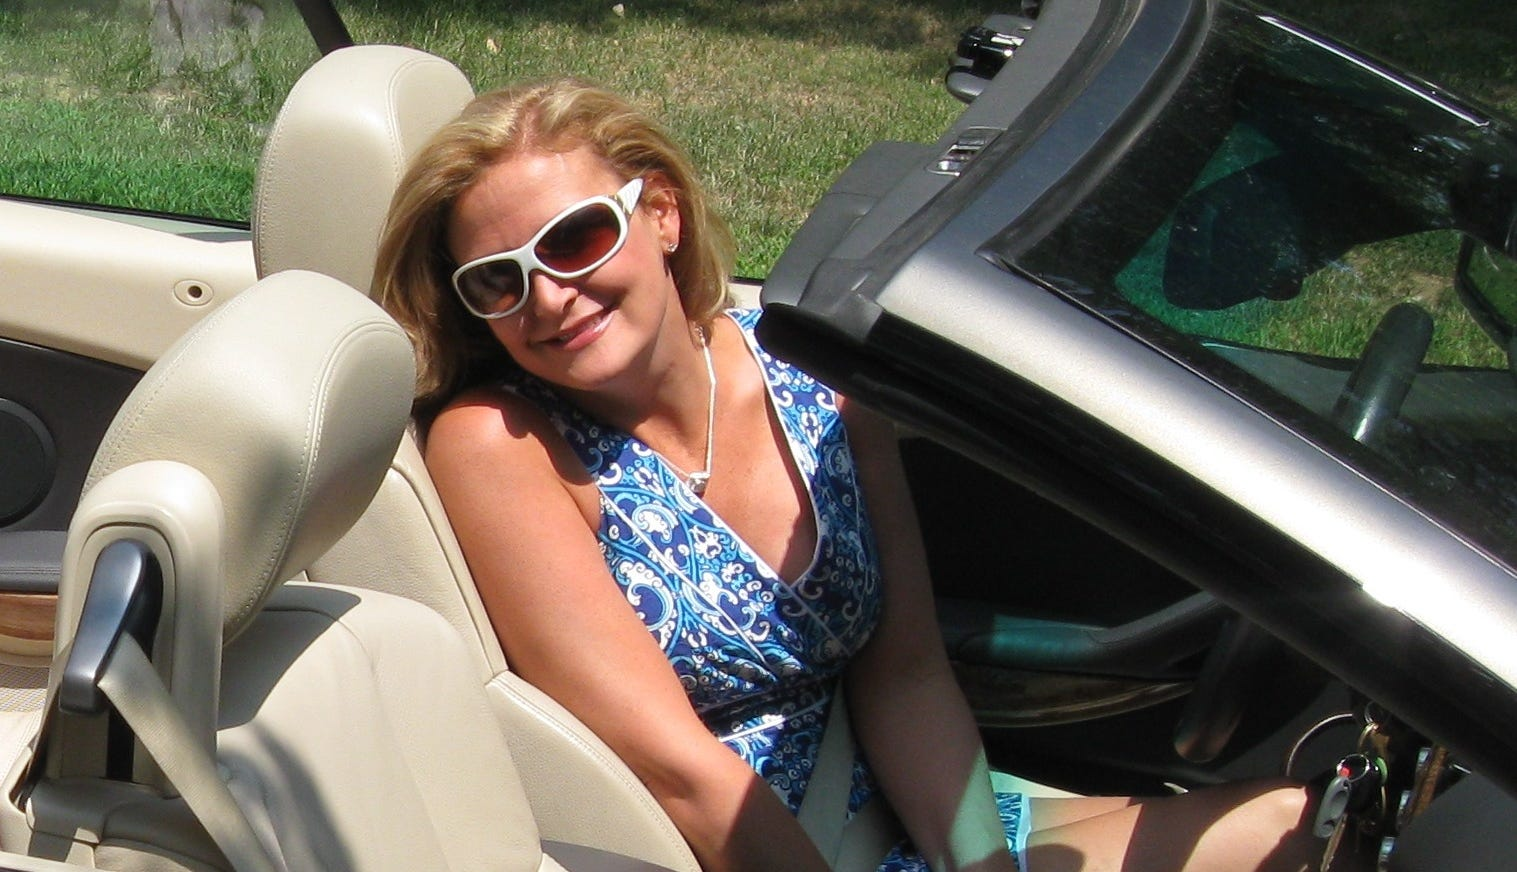 Attorney Erika Byrd, who died due to alcohol in 2011, used to love to drive with the top down in her car even in cold weather, her father Ron Byrd says.